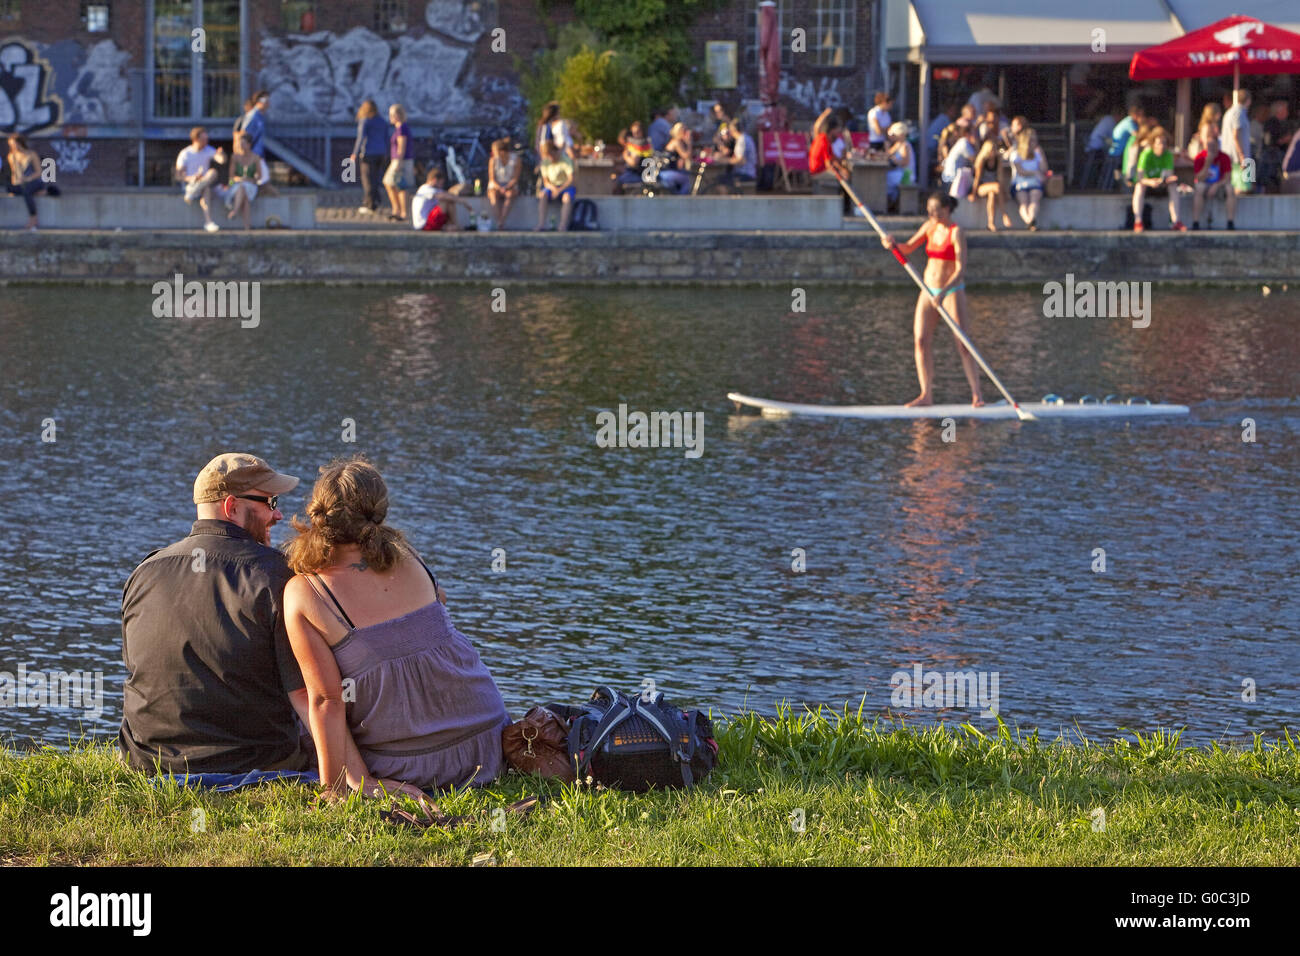 People on Kreativkai, Muenster, Germany - Stock Image